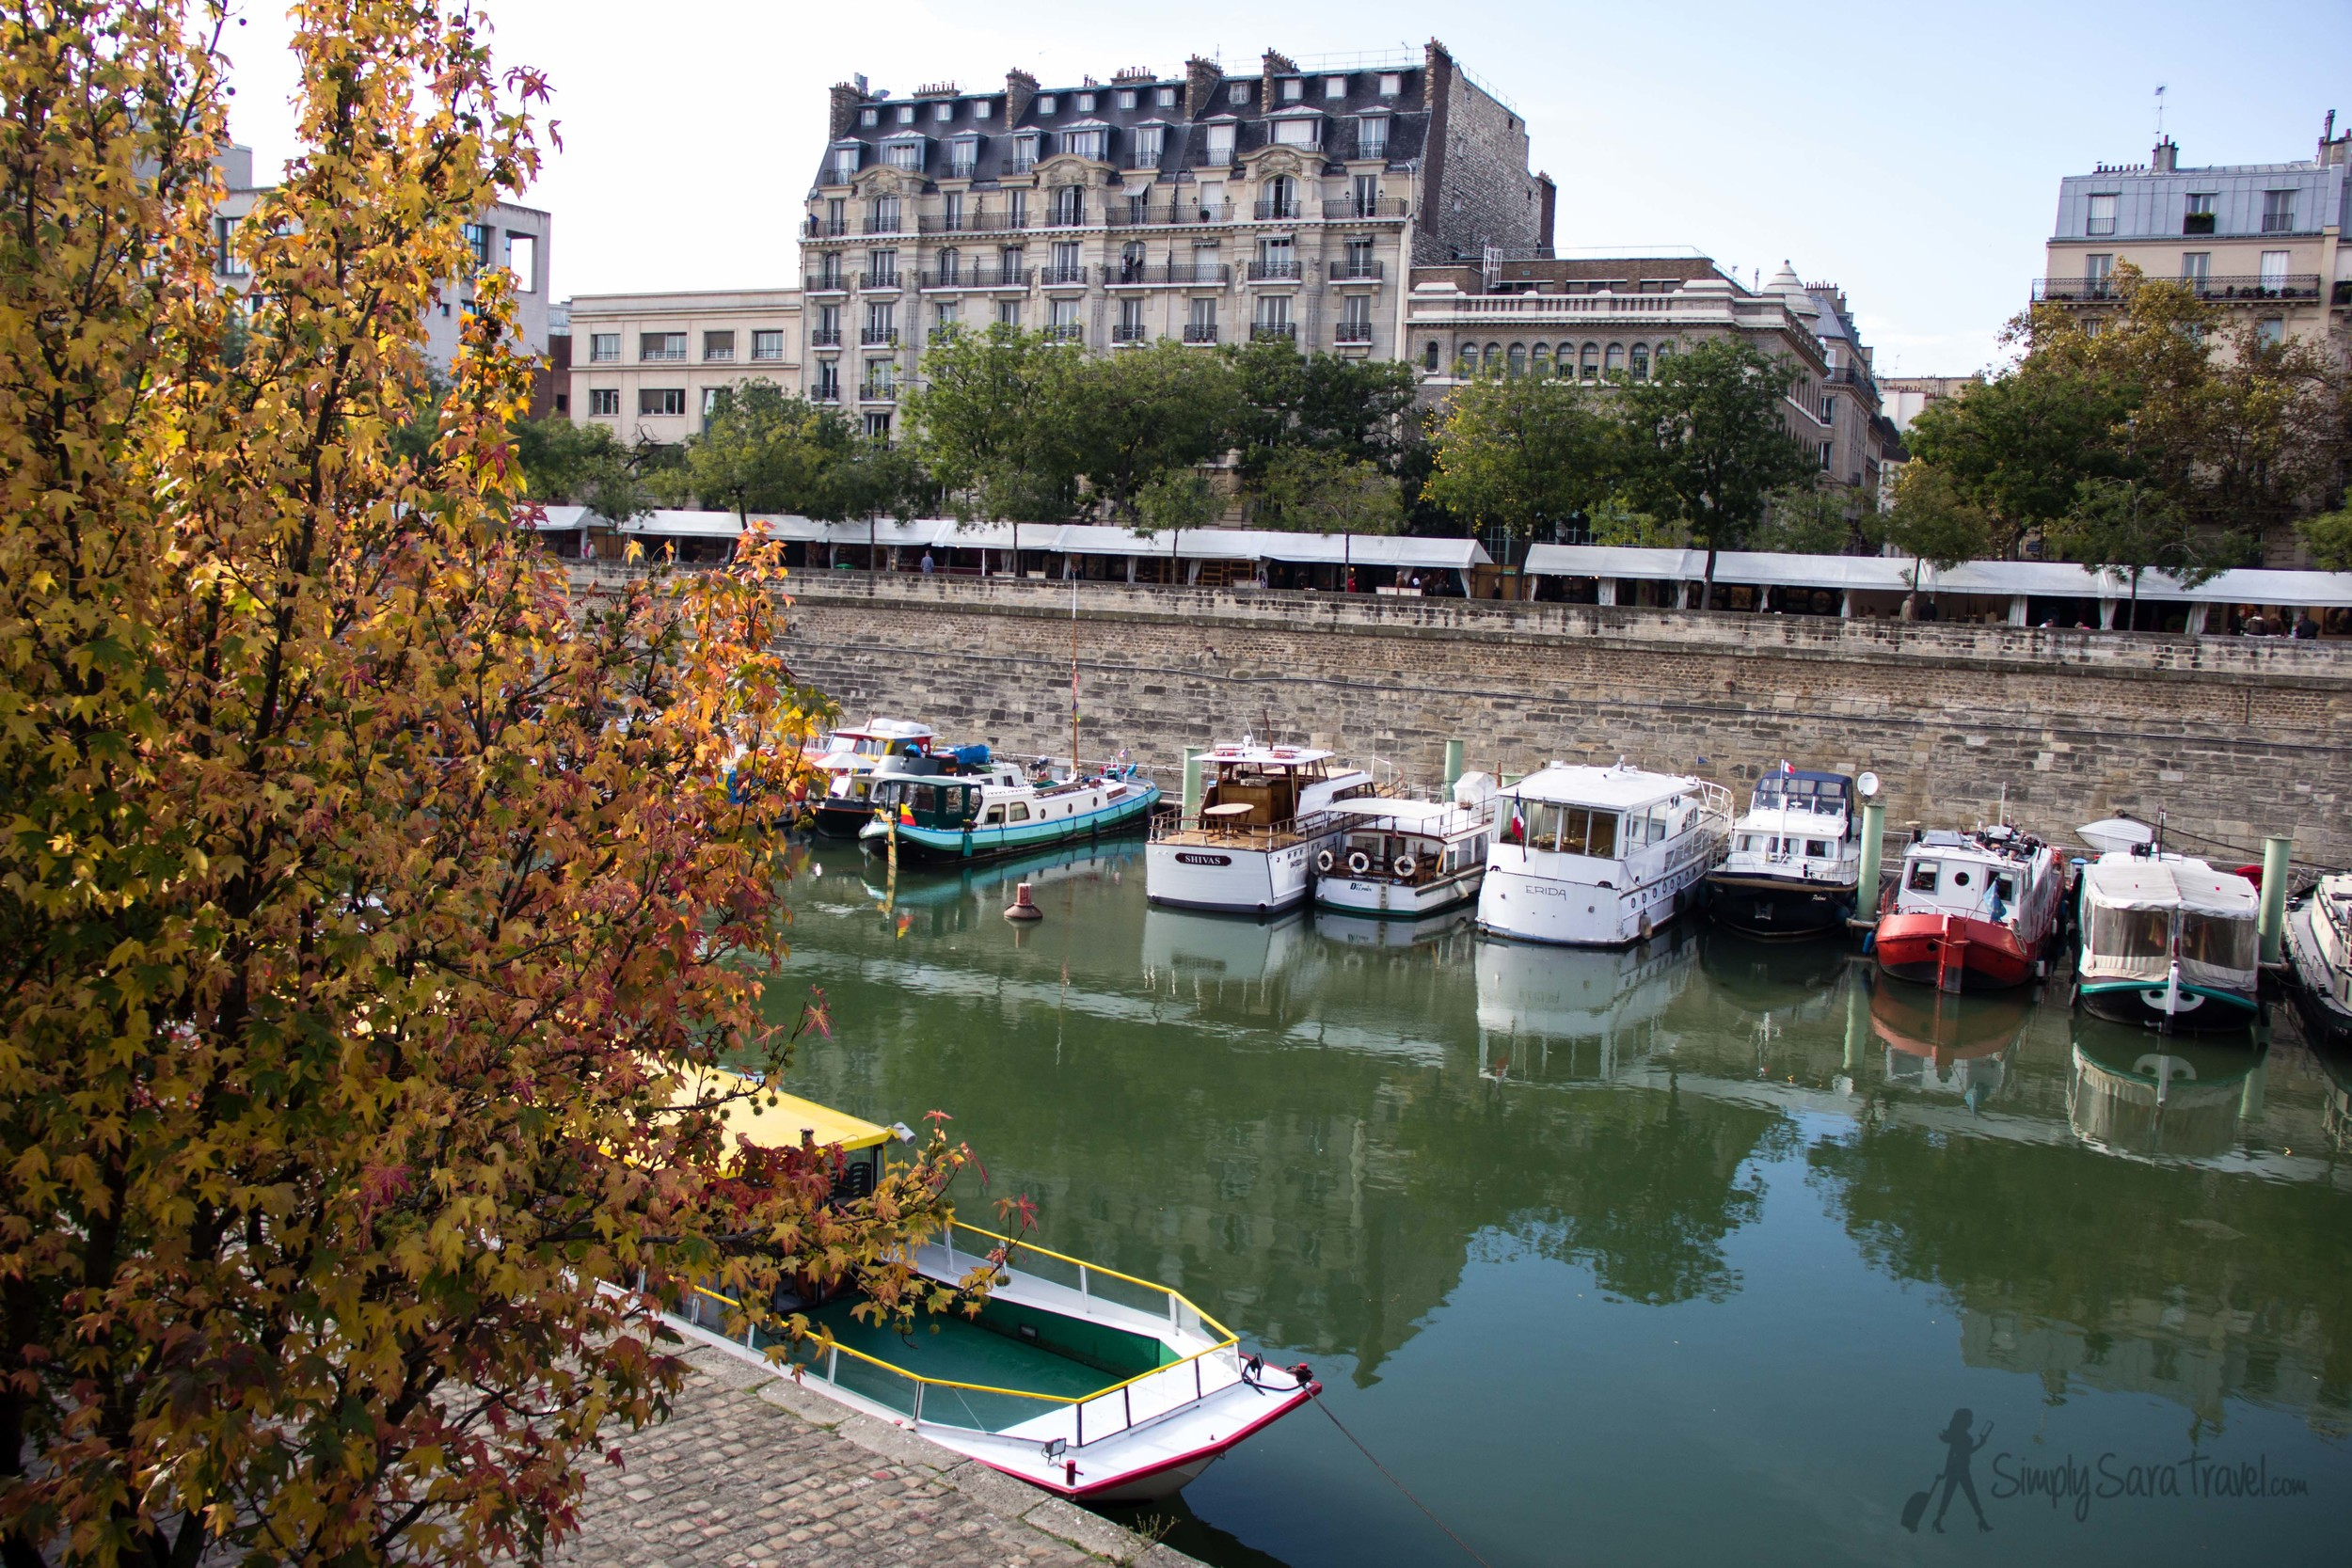 Not to say that autumn is all bad in Paris!